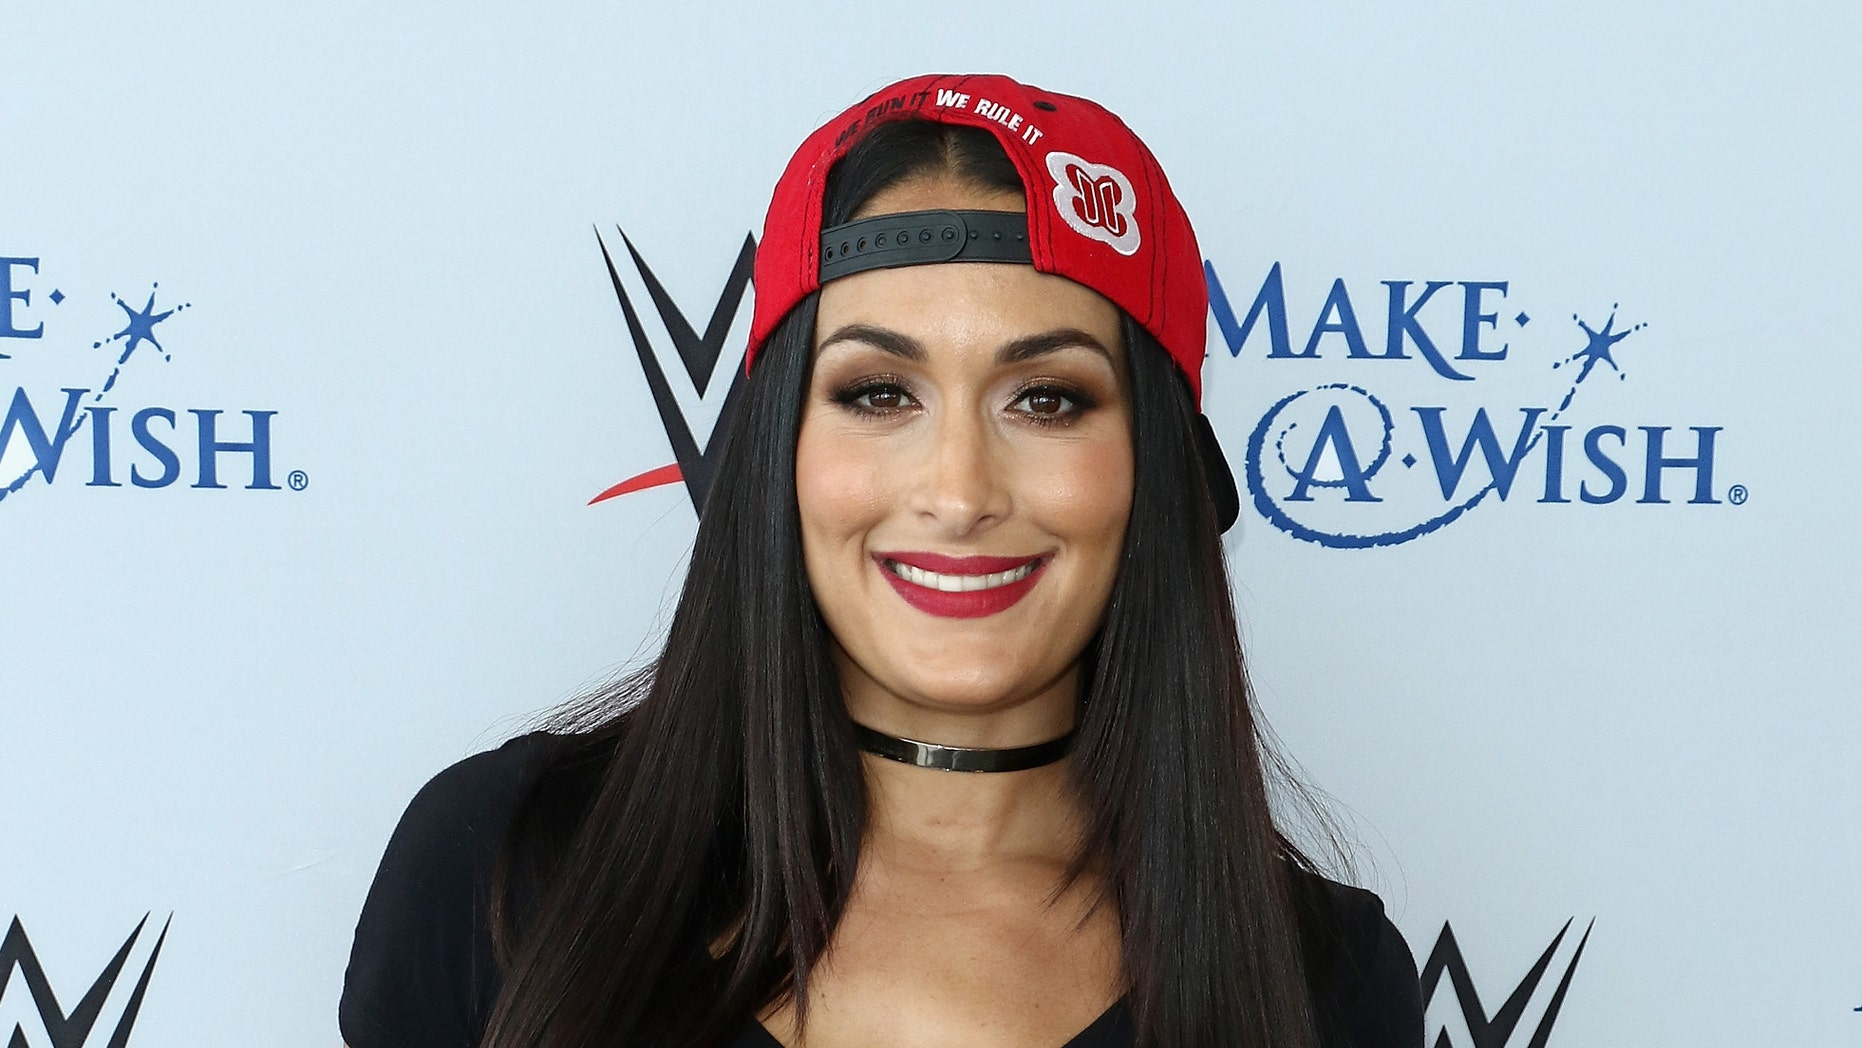 Nikki Bella and Artem Chigvintsev Instagram official after John Cena split